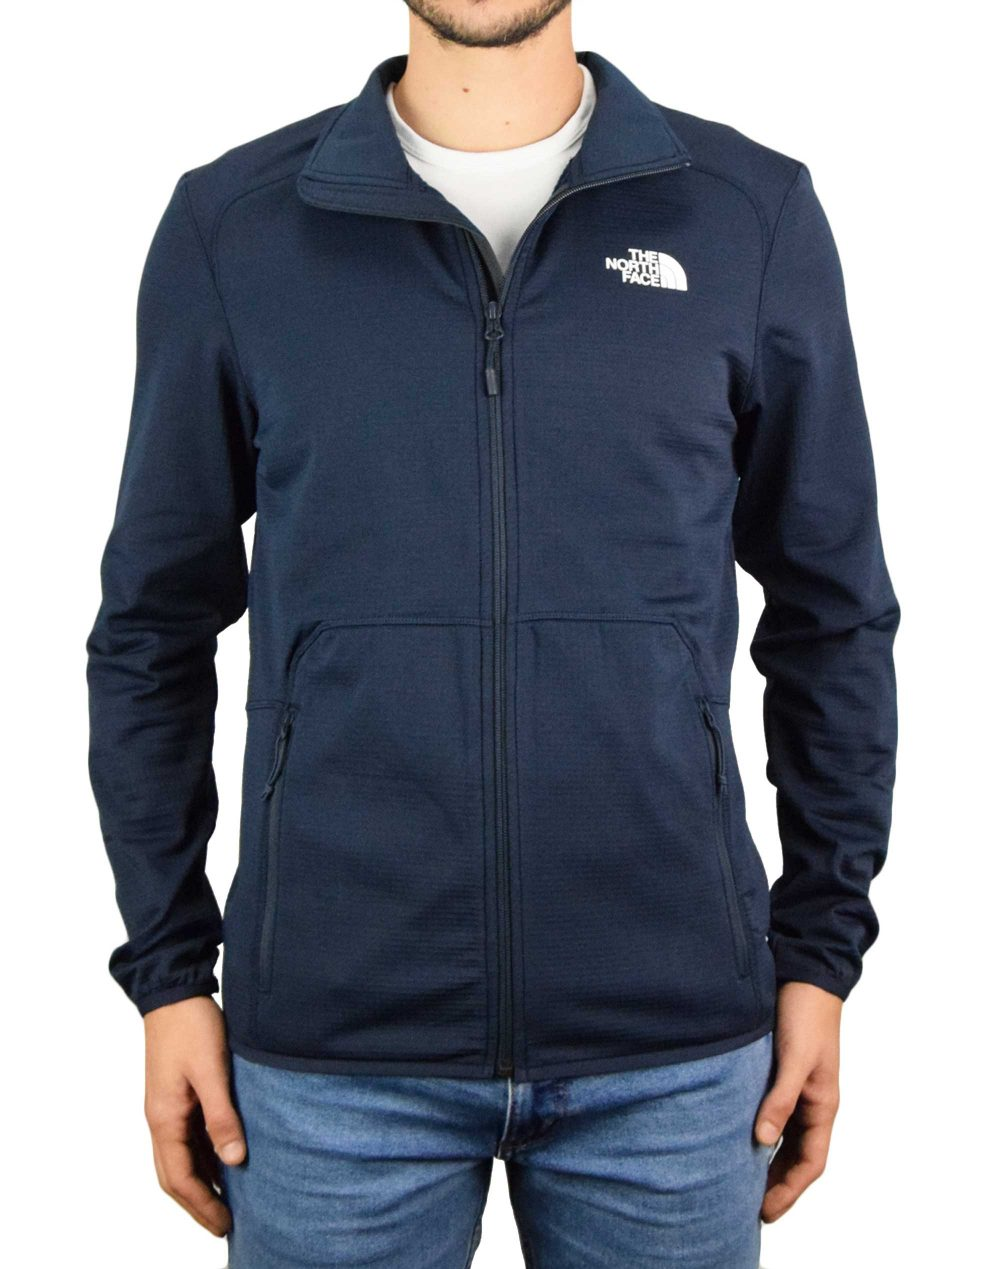 The North Face Quest Full Zip Jacket (NF0A3YG1H2G1) Urban Navy